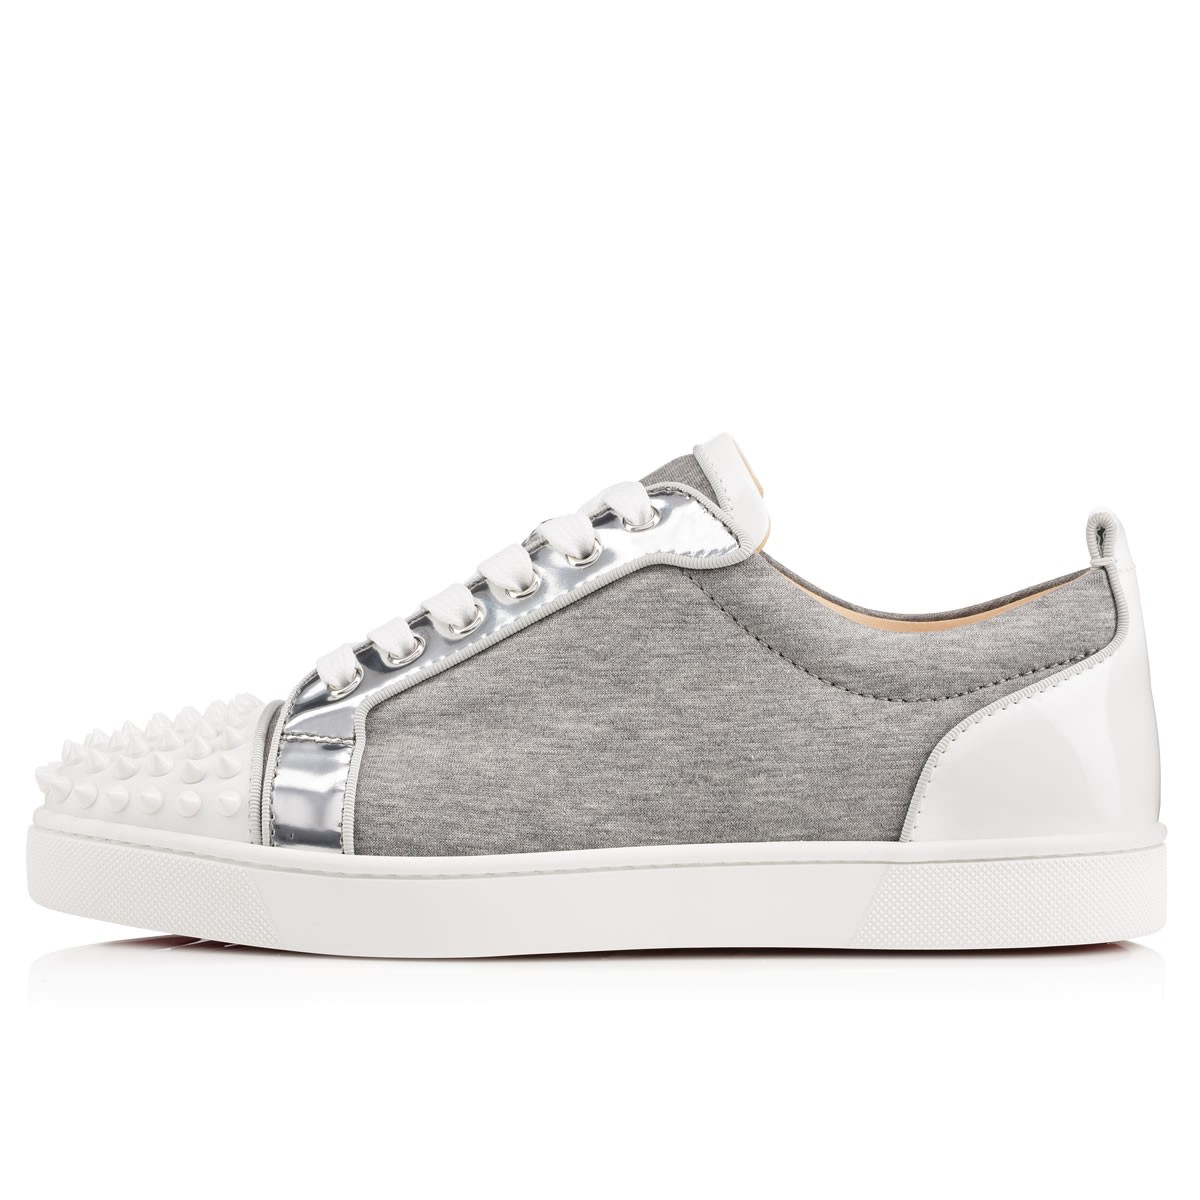 a4b97b2c619f Lyst - Christian Louboutin Louis Junior Spikes Mens Flat in Gray for Men